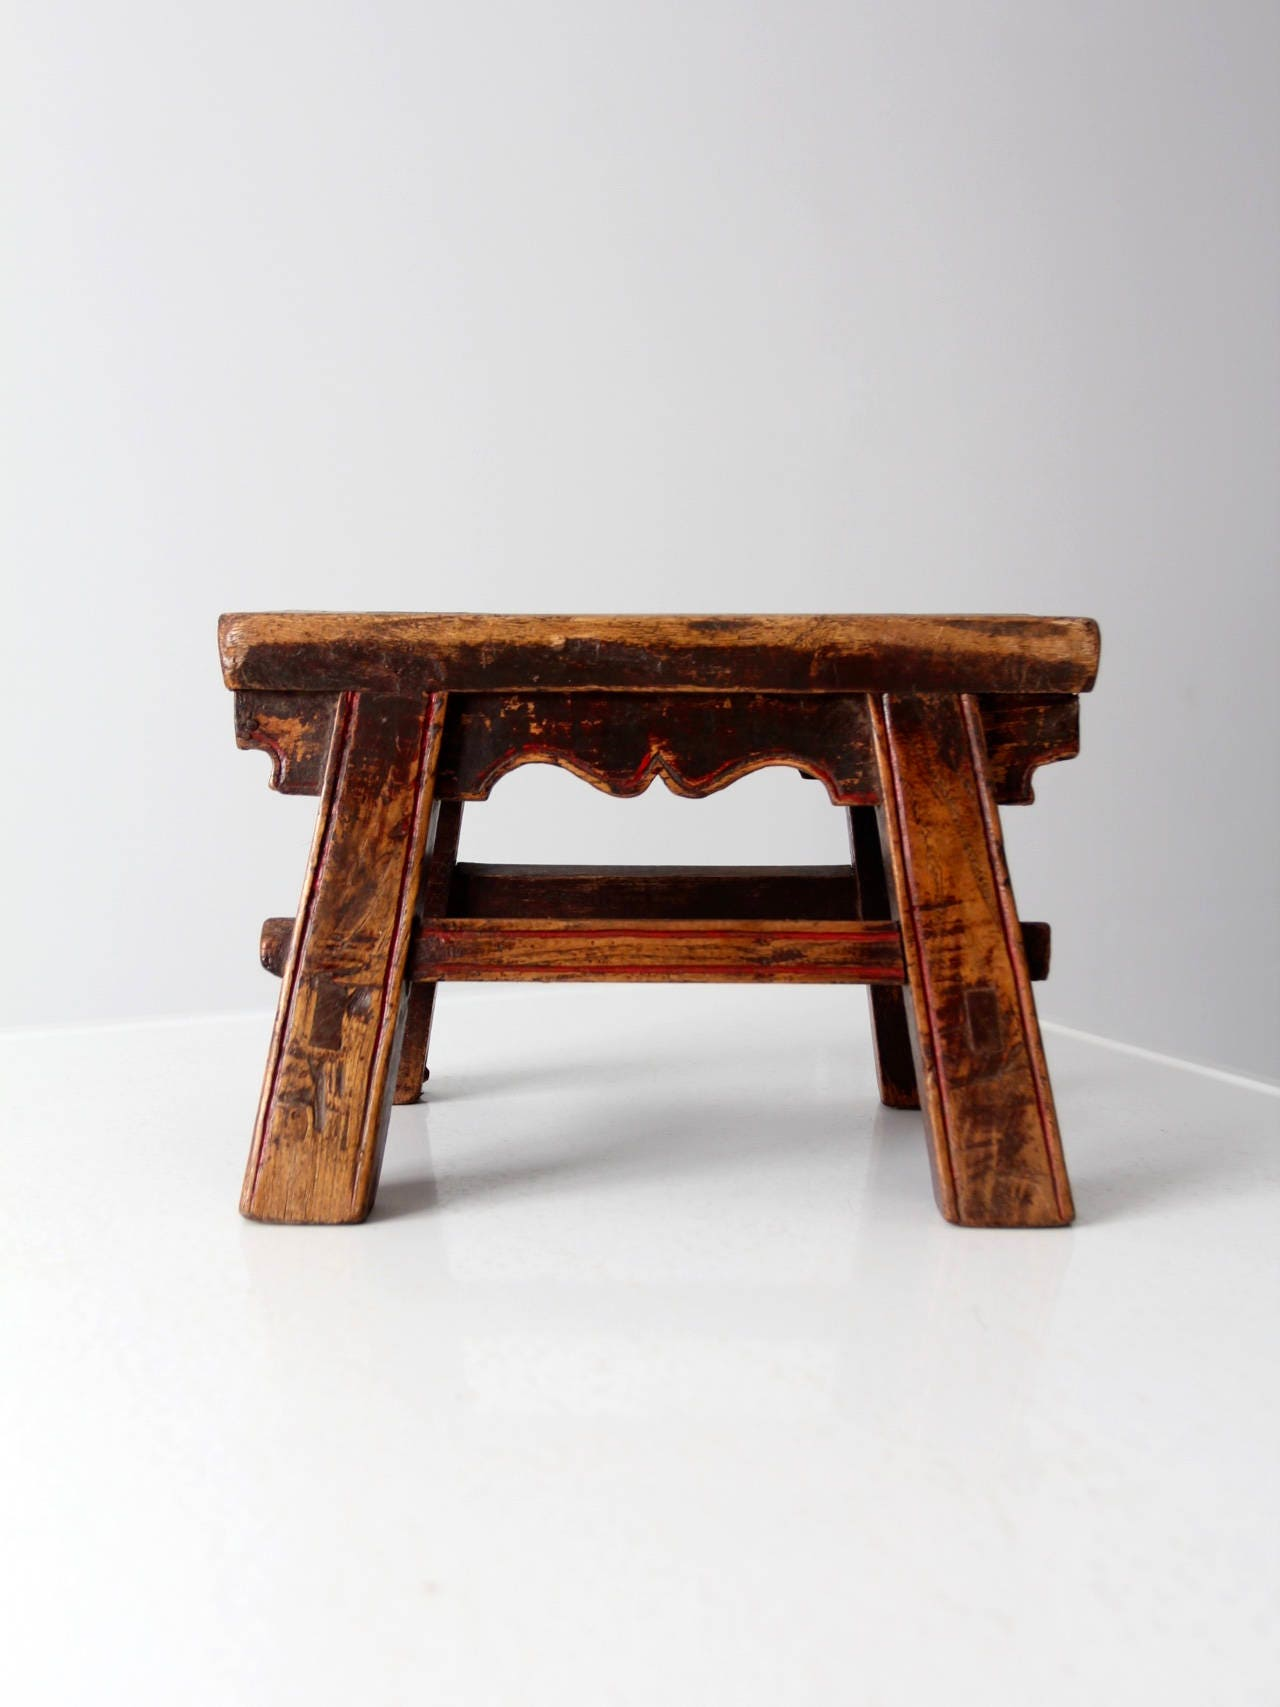 Antique Chinese Stool Small Wooden Riser